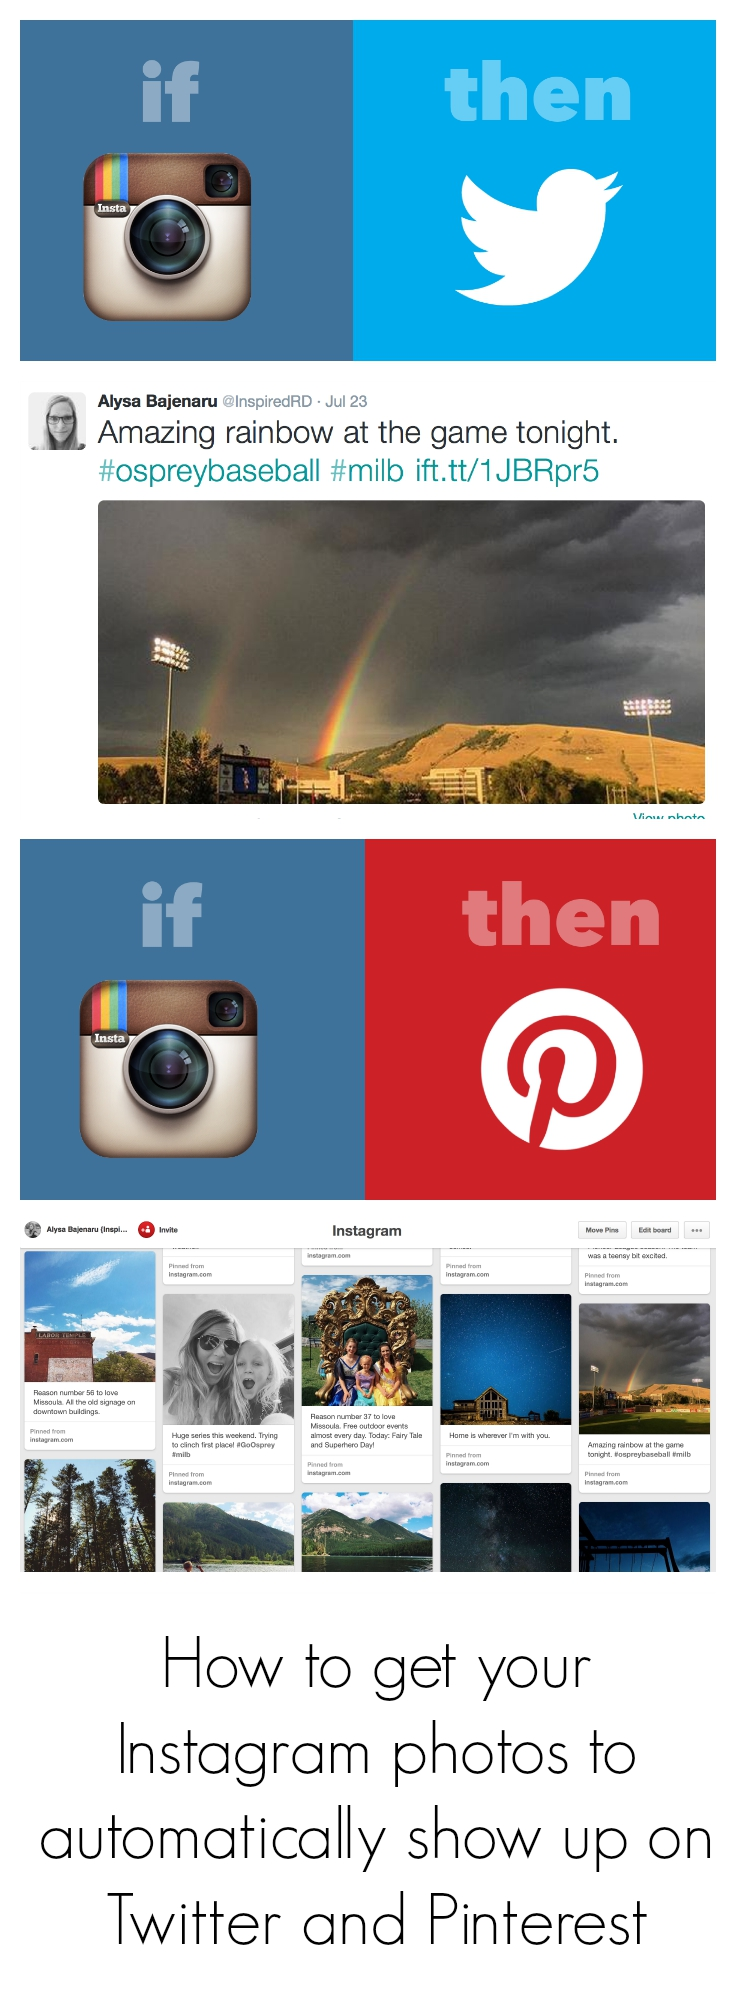 How to get your Instagram photos to automatically show up on Twitter and Pinterest (It's easy!)